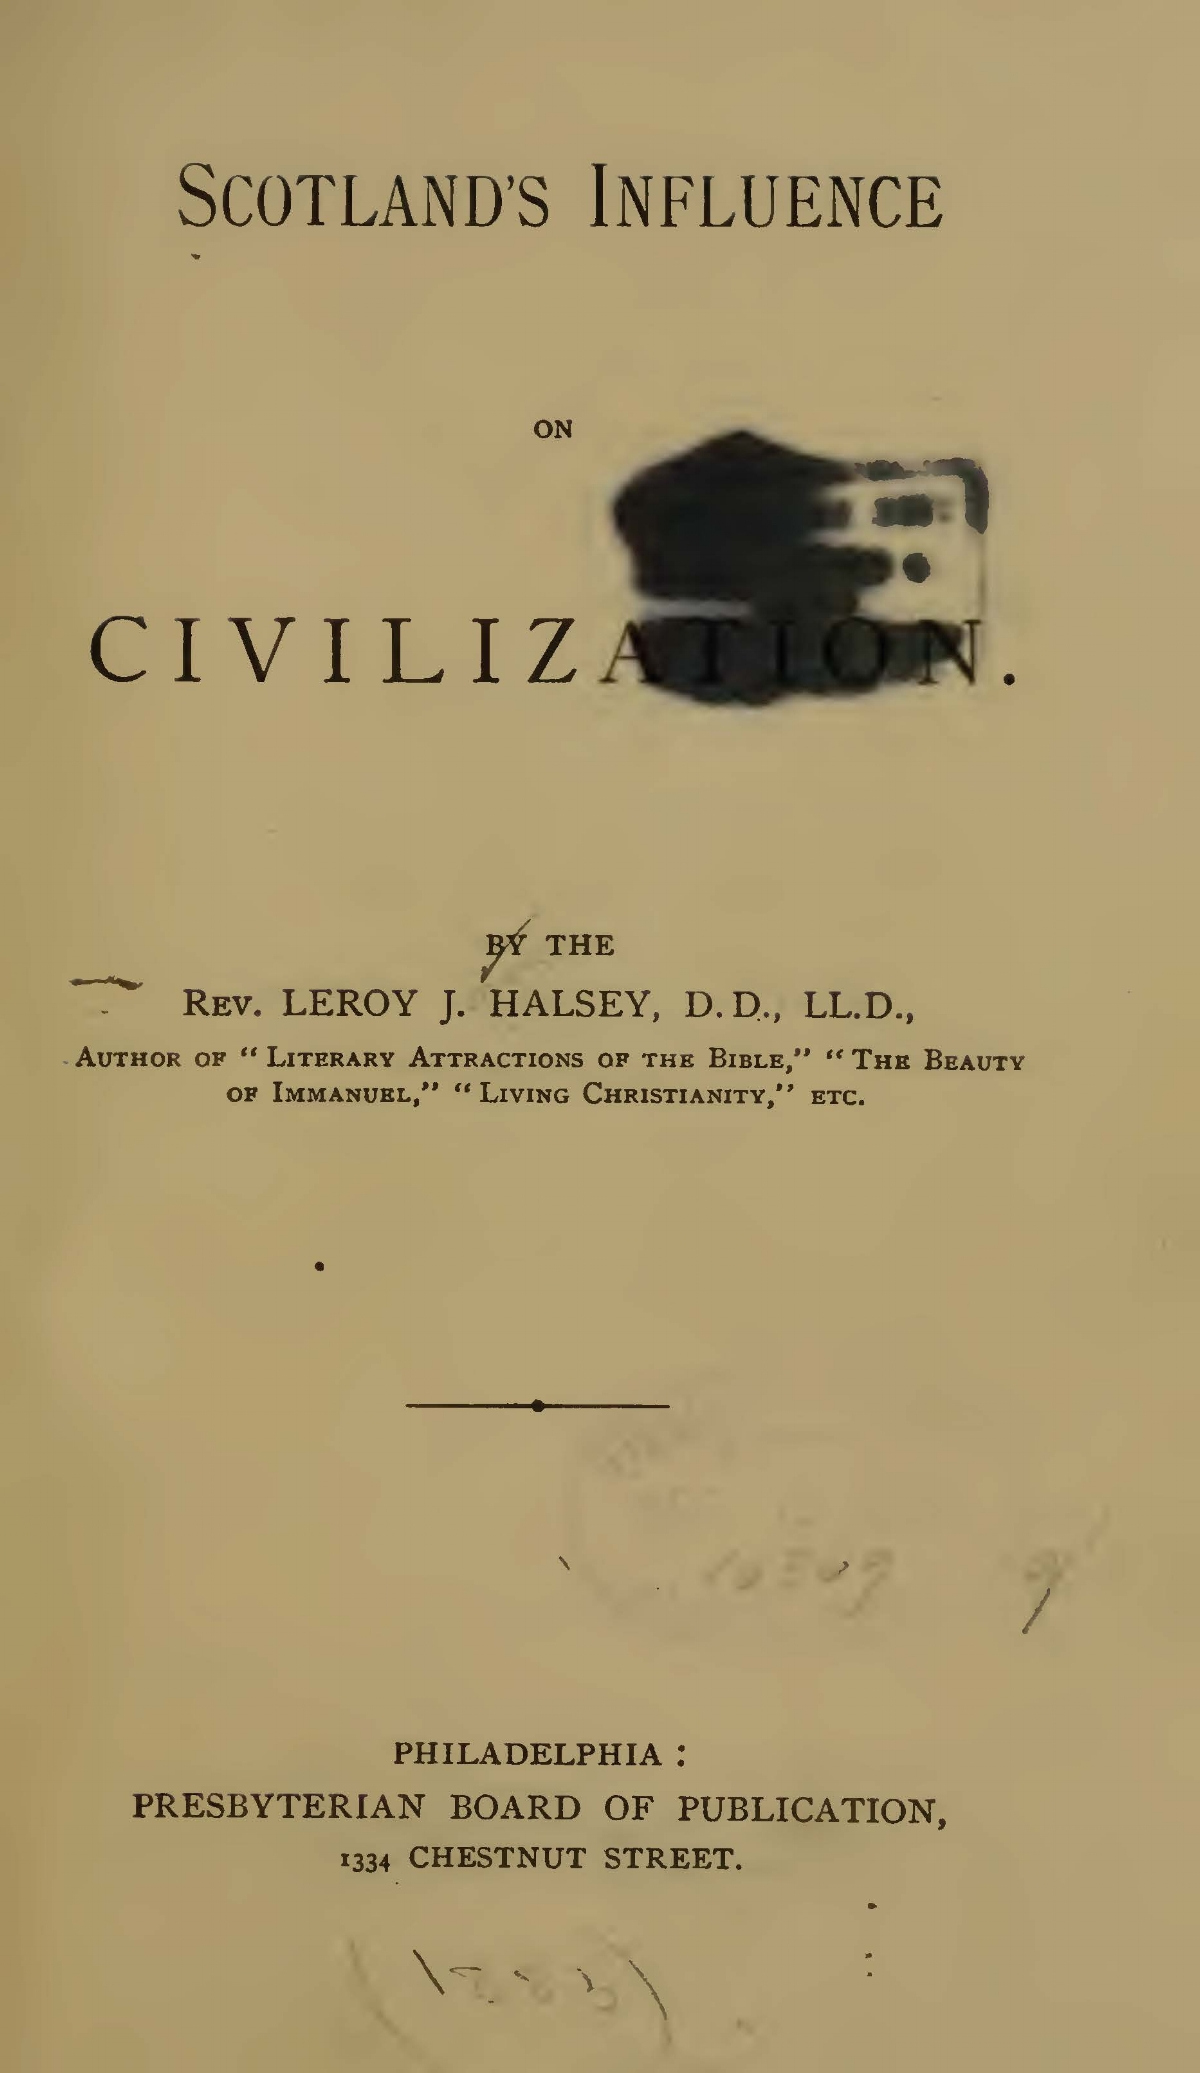 Halsey, Leroy Jones, Scotland's Influence on Civilization Title Page.jpg